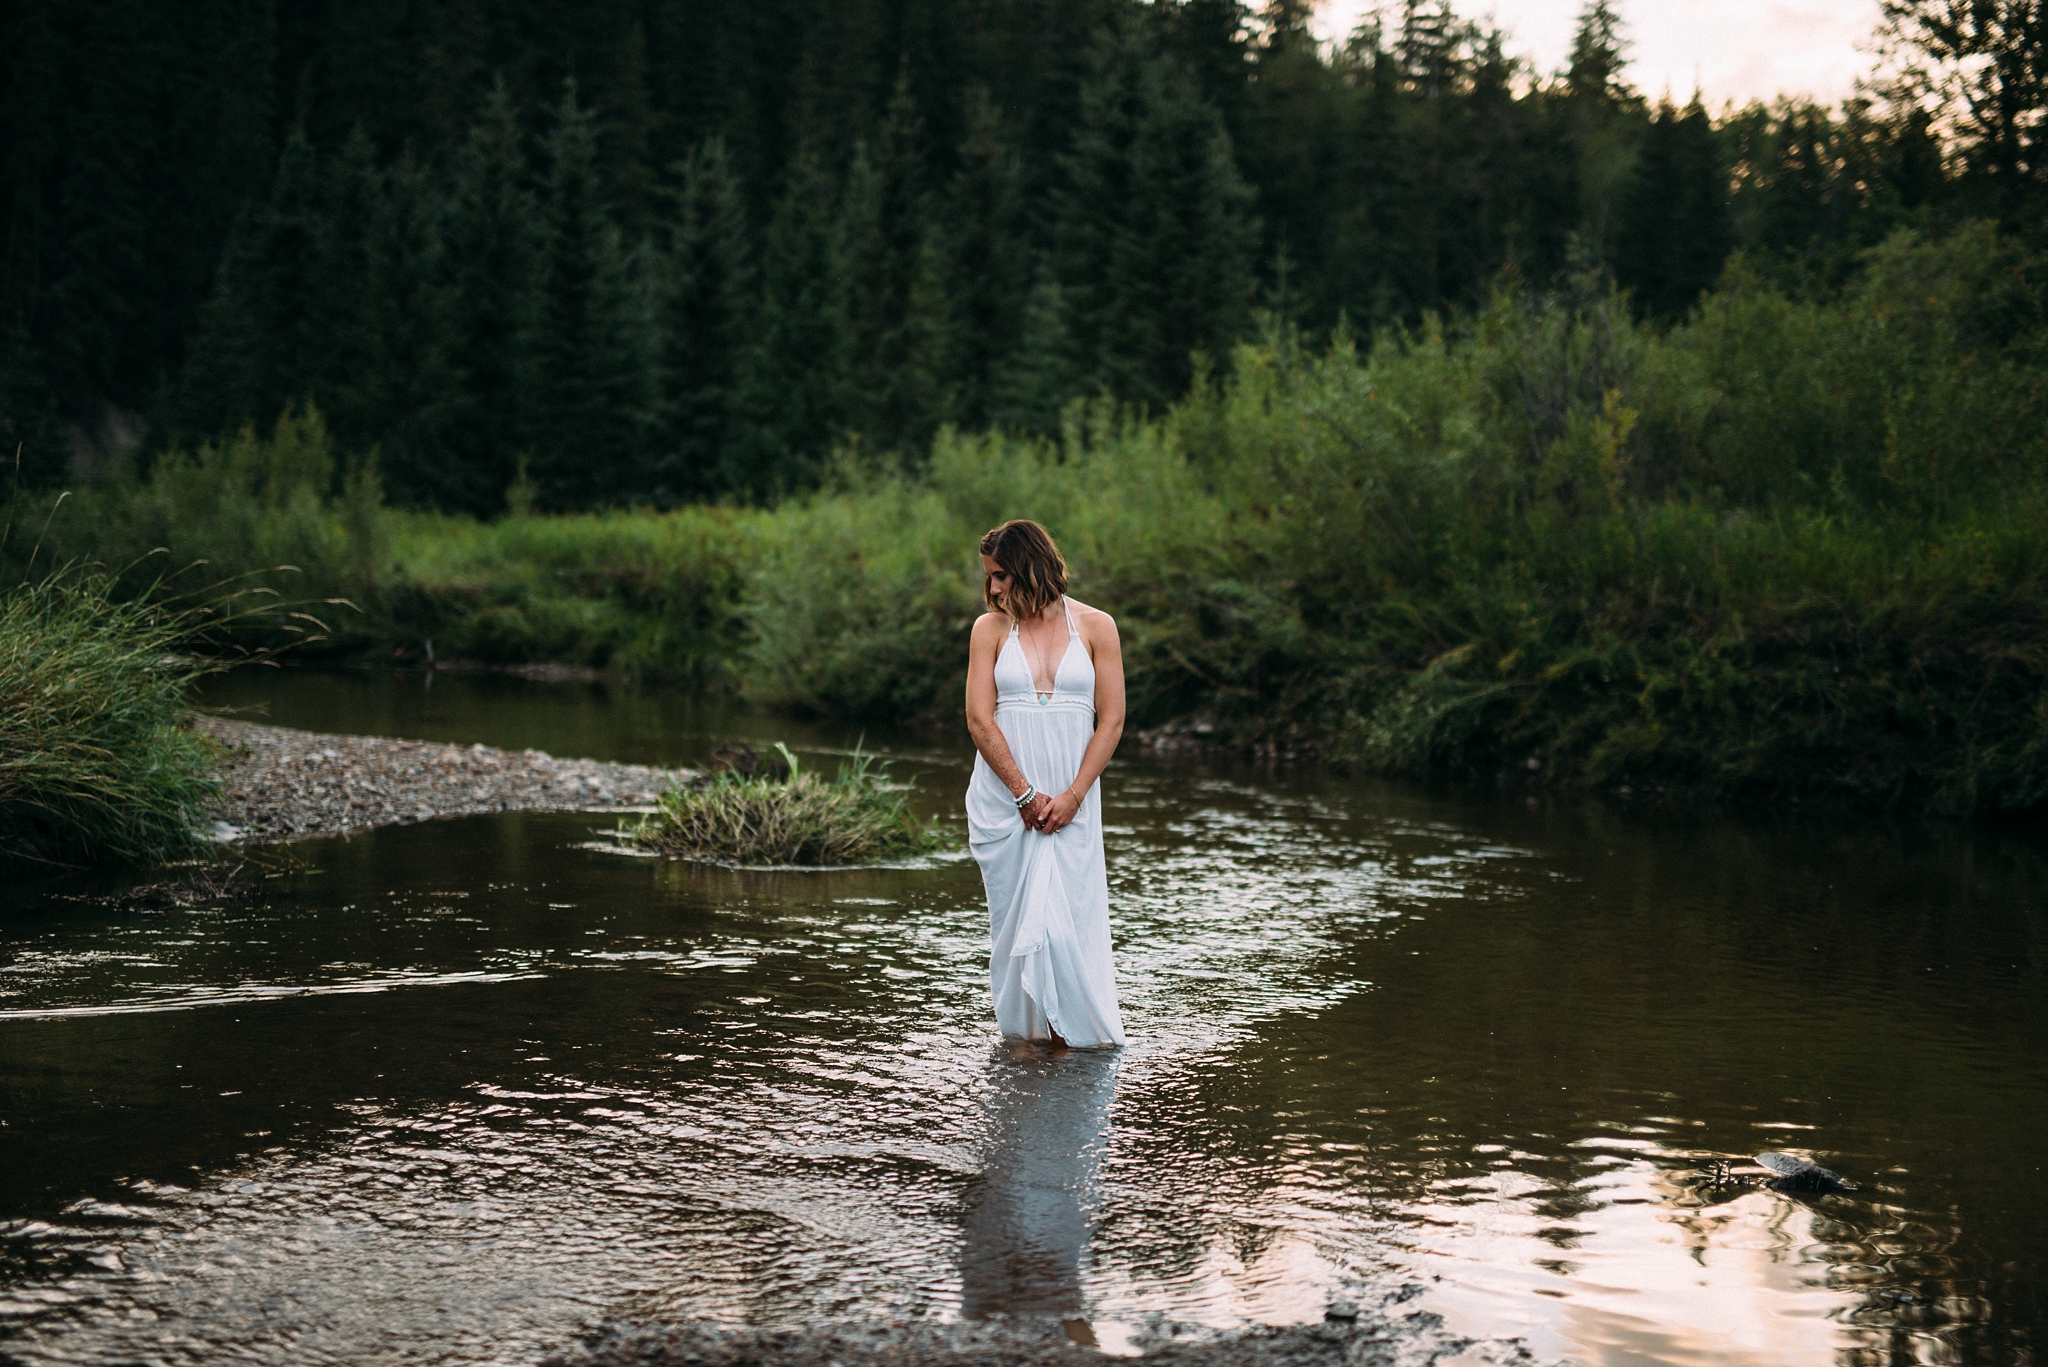 kaihla_tonai_intimate_wedding_elopement_photographer_4491